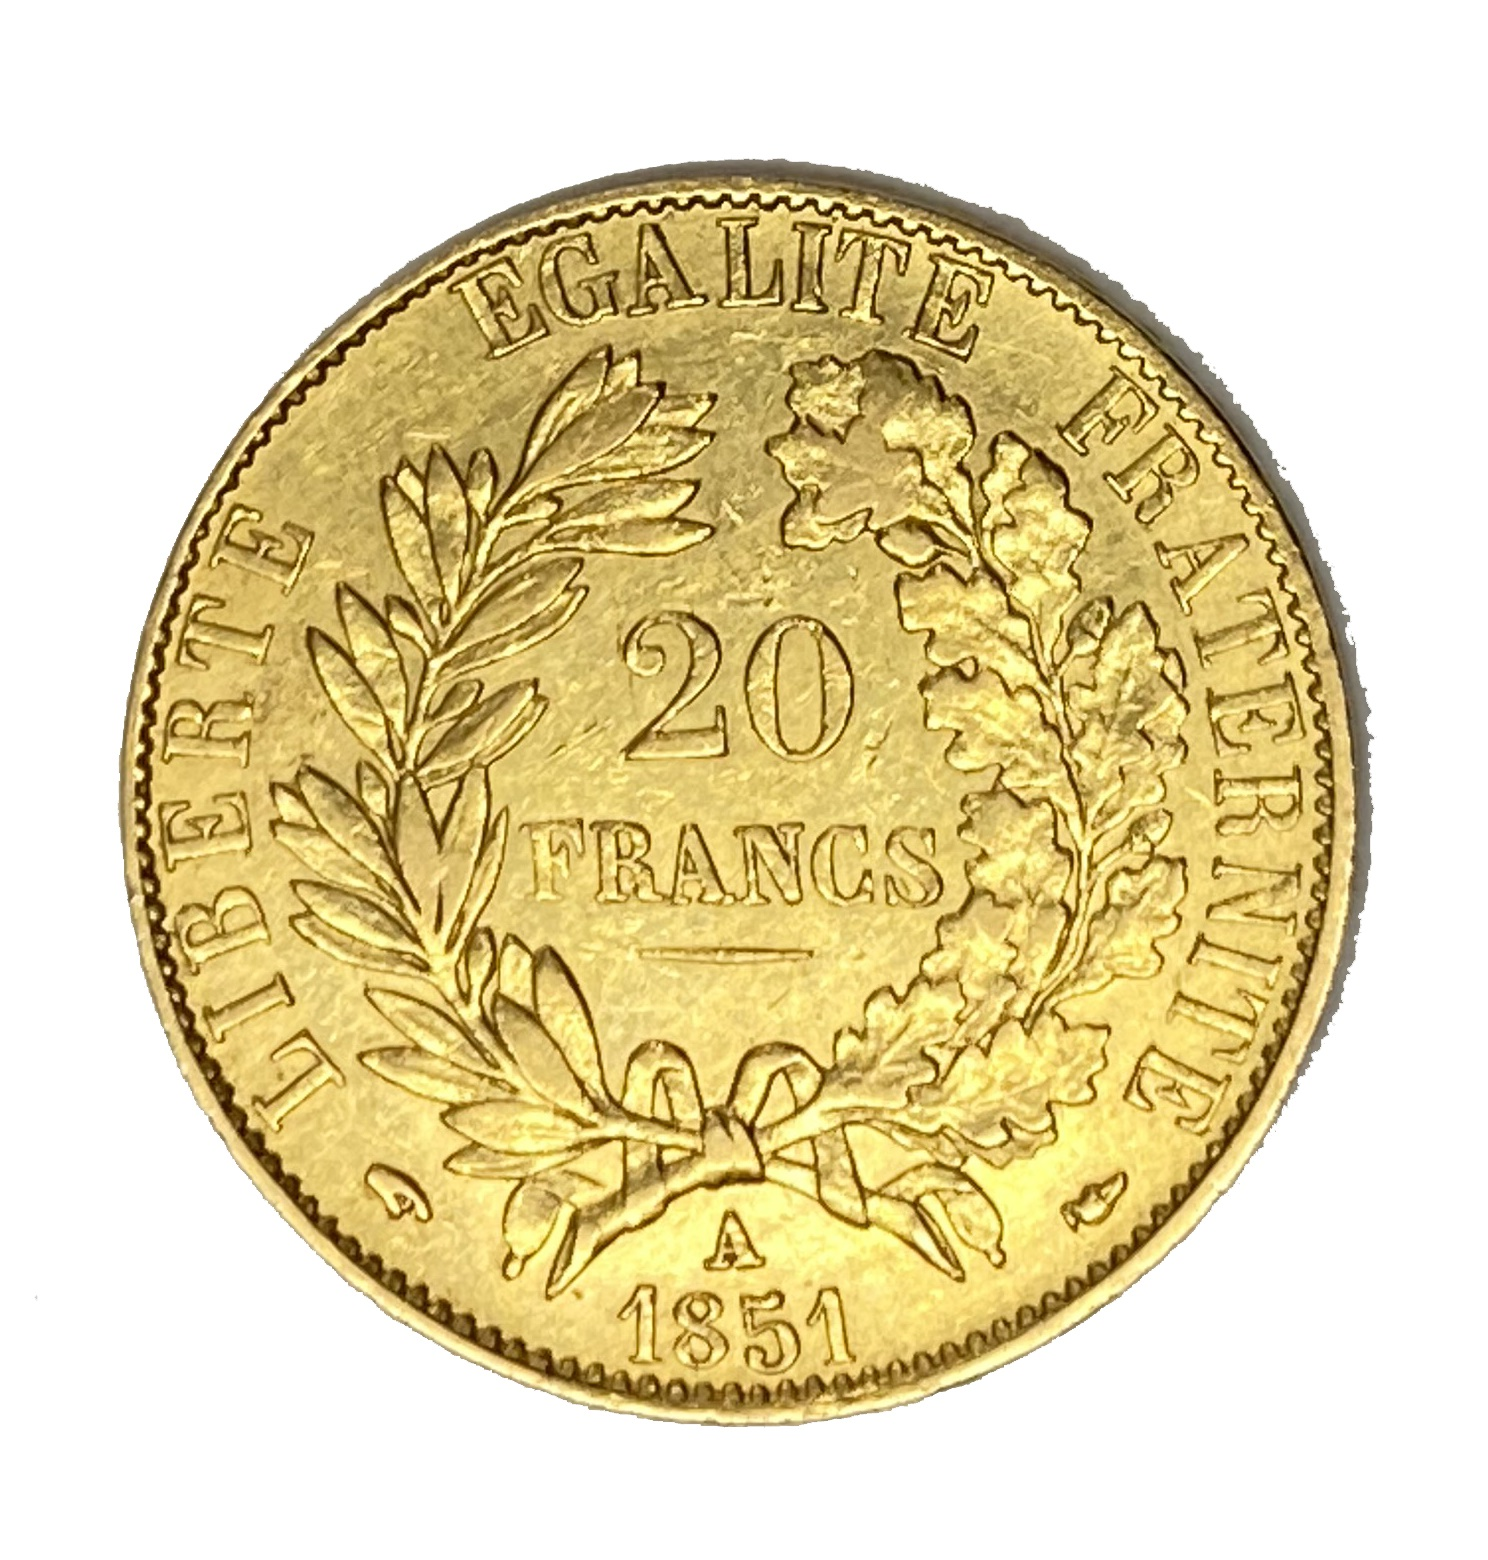 French Republic 20 Franc gold coin, 1851 - Image 2 of 2